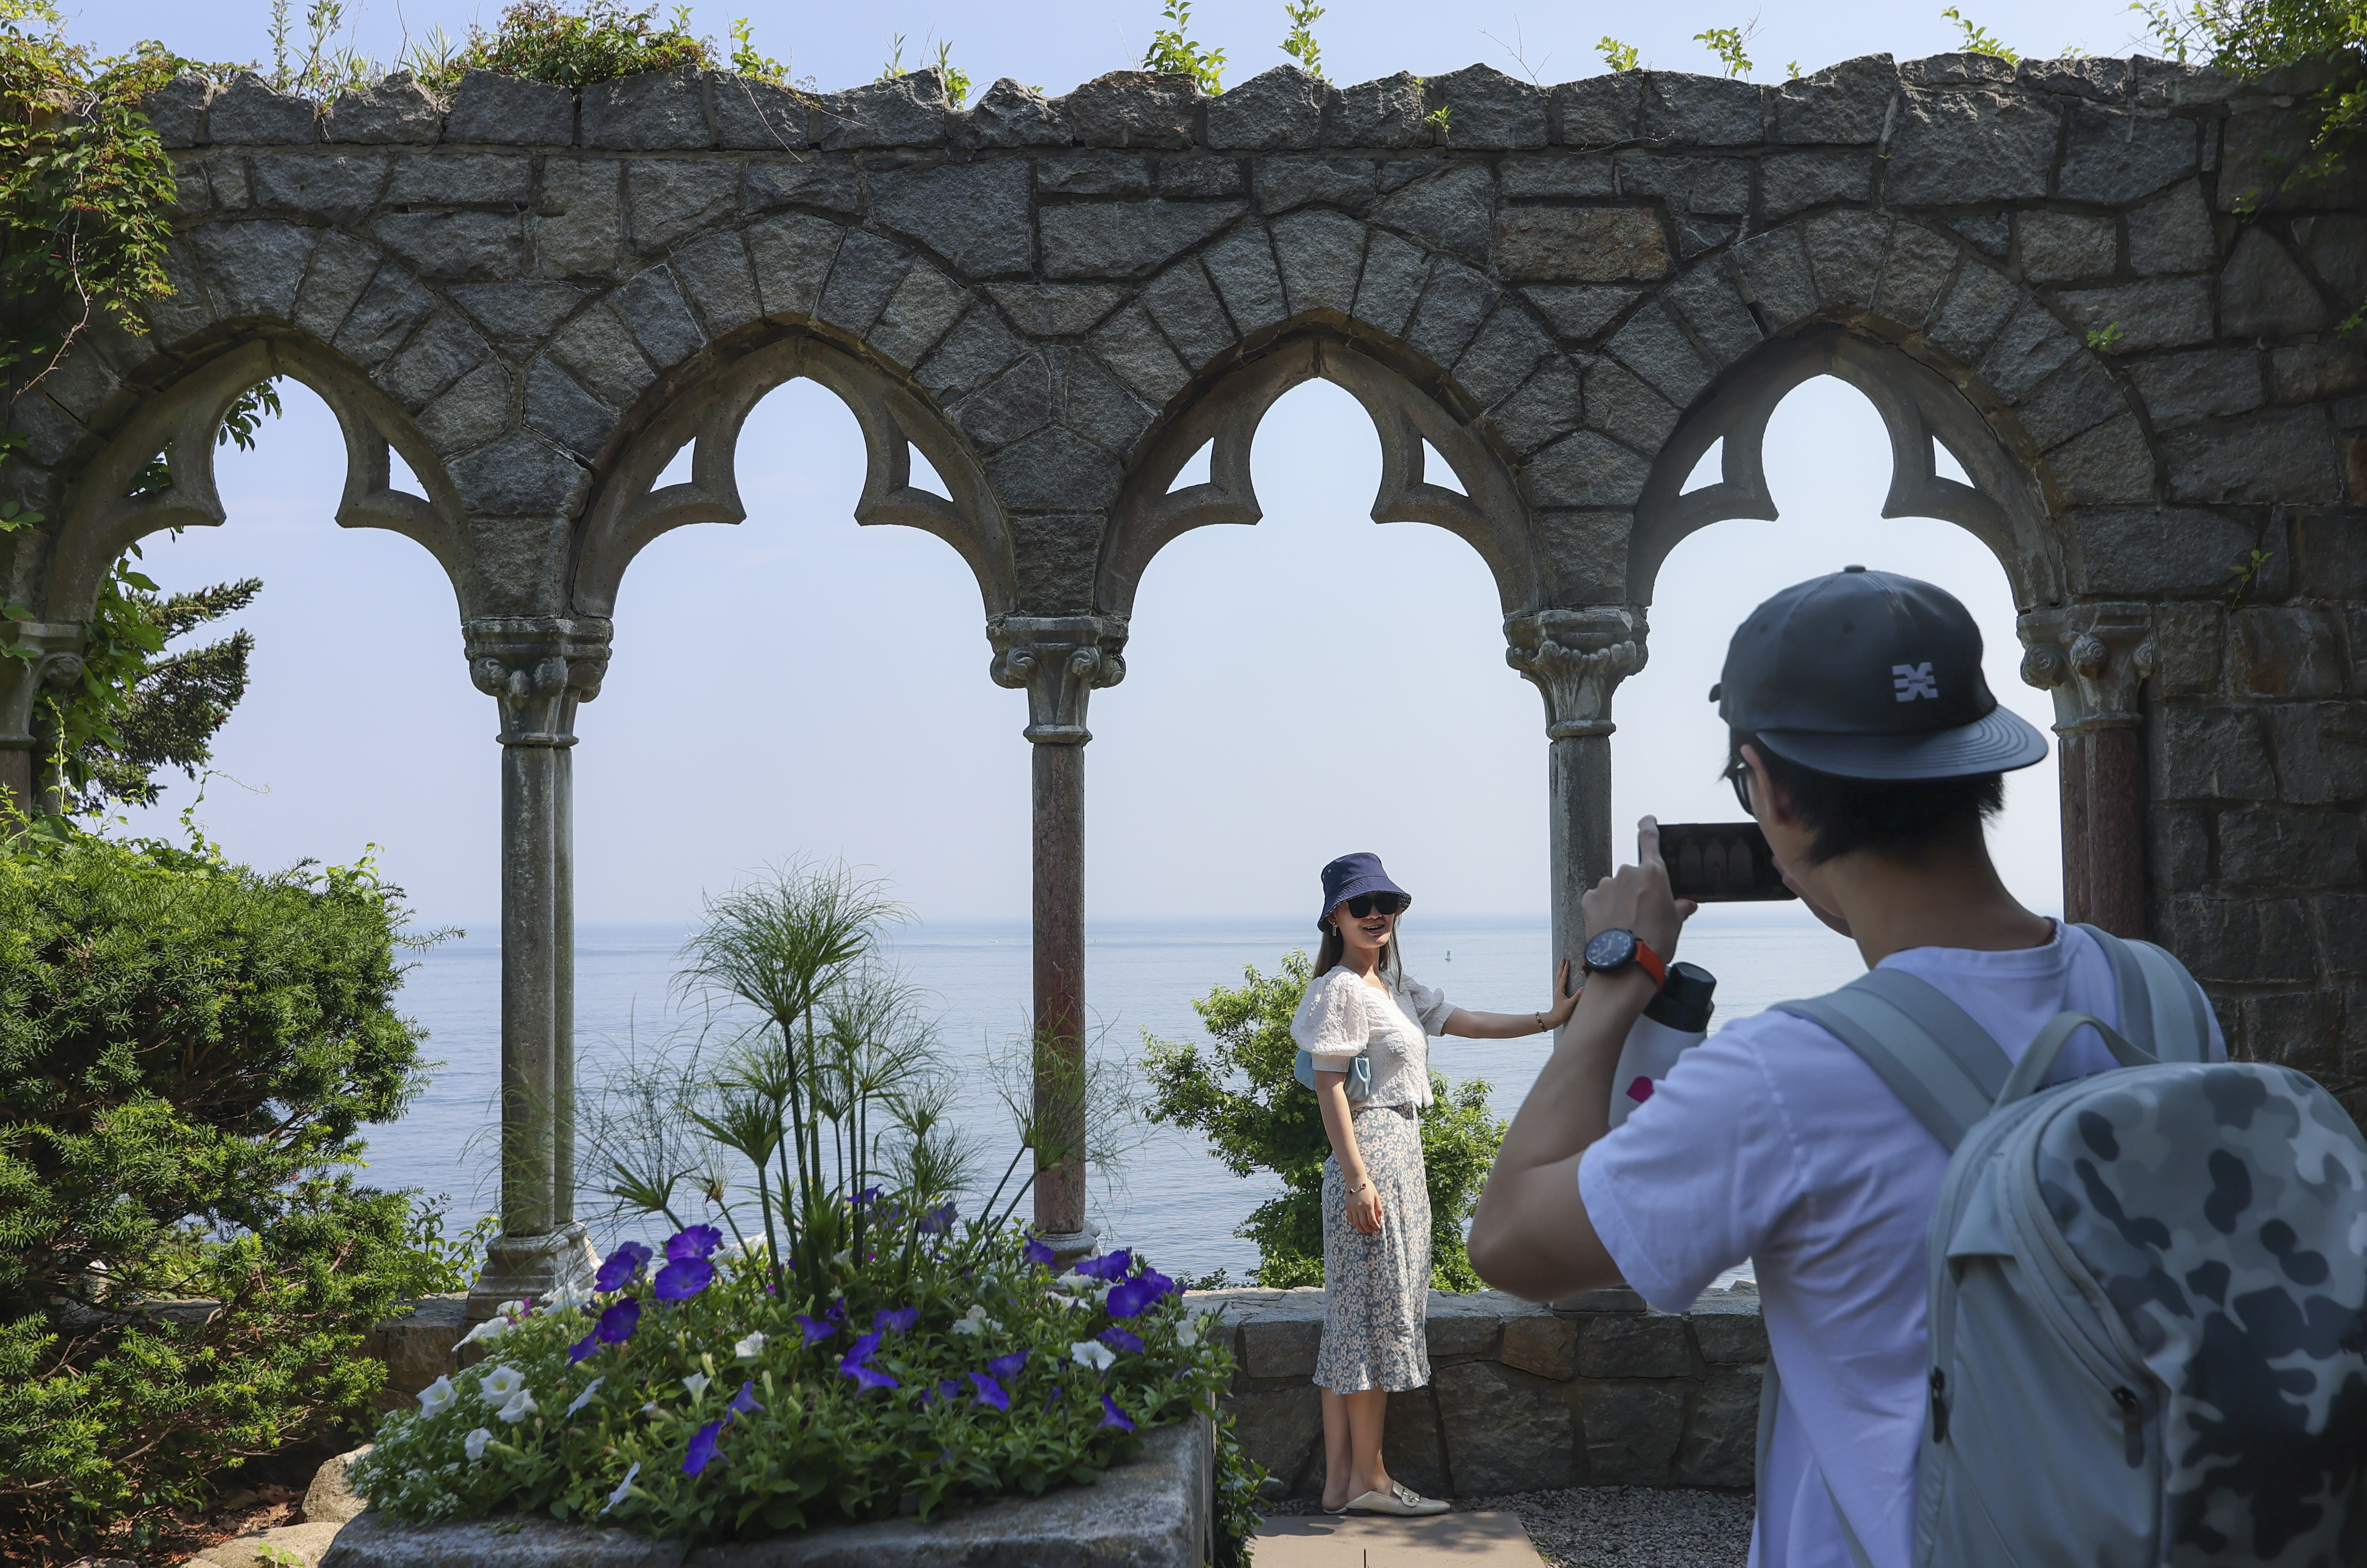 Ante Bing photographs his friend Mary Bai, both Boston residents, in front of 12th and 13th century Italian arches in front of the Hammond Castle Museum in Gloucester.